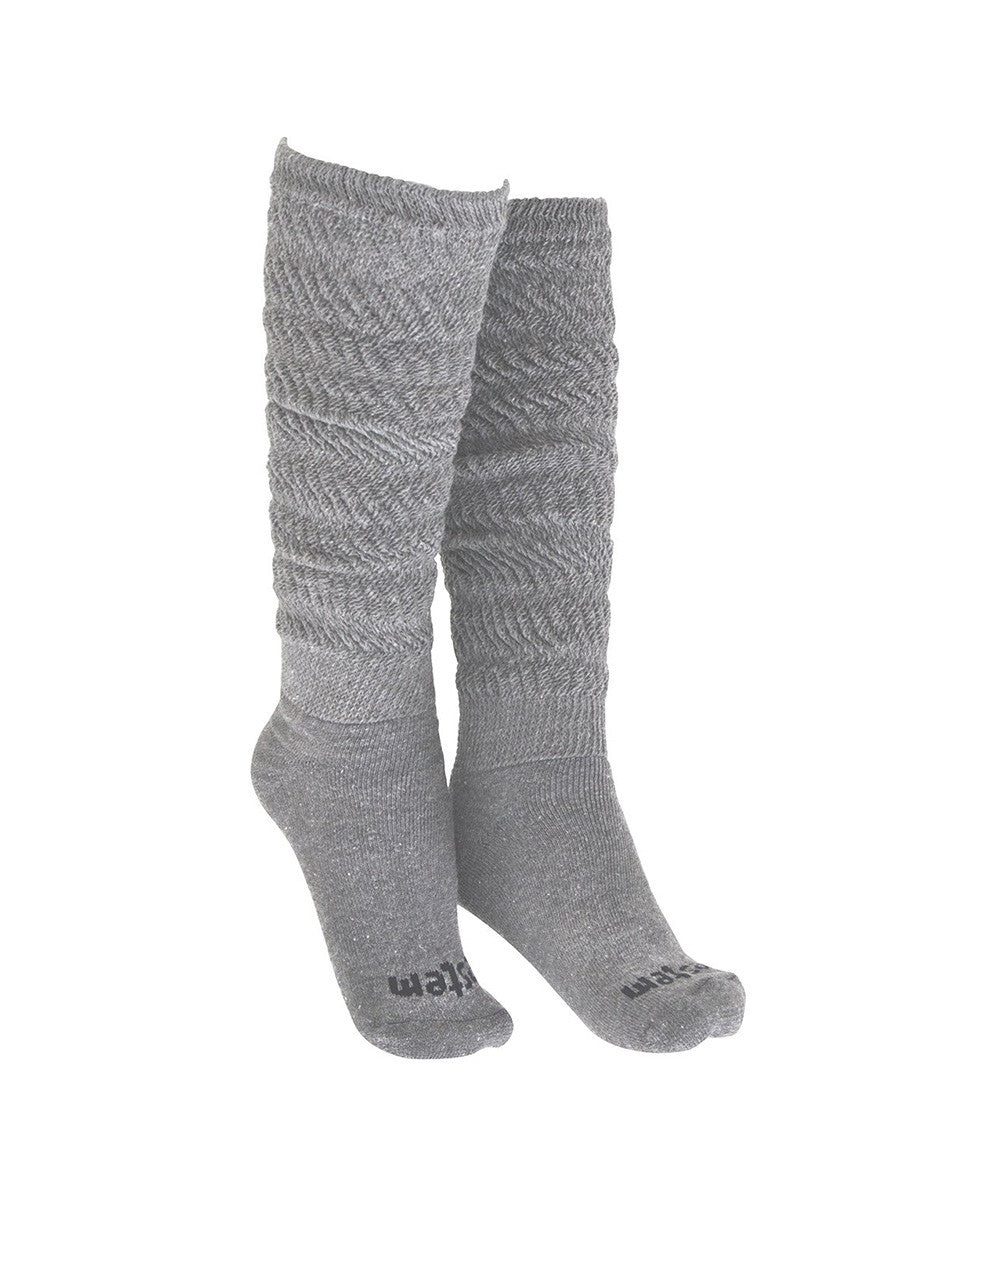 SOCKS 04 AEROBIC LONG GREY